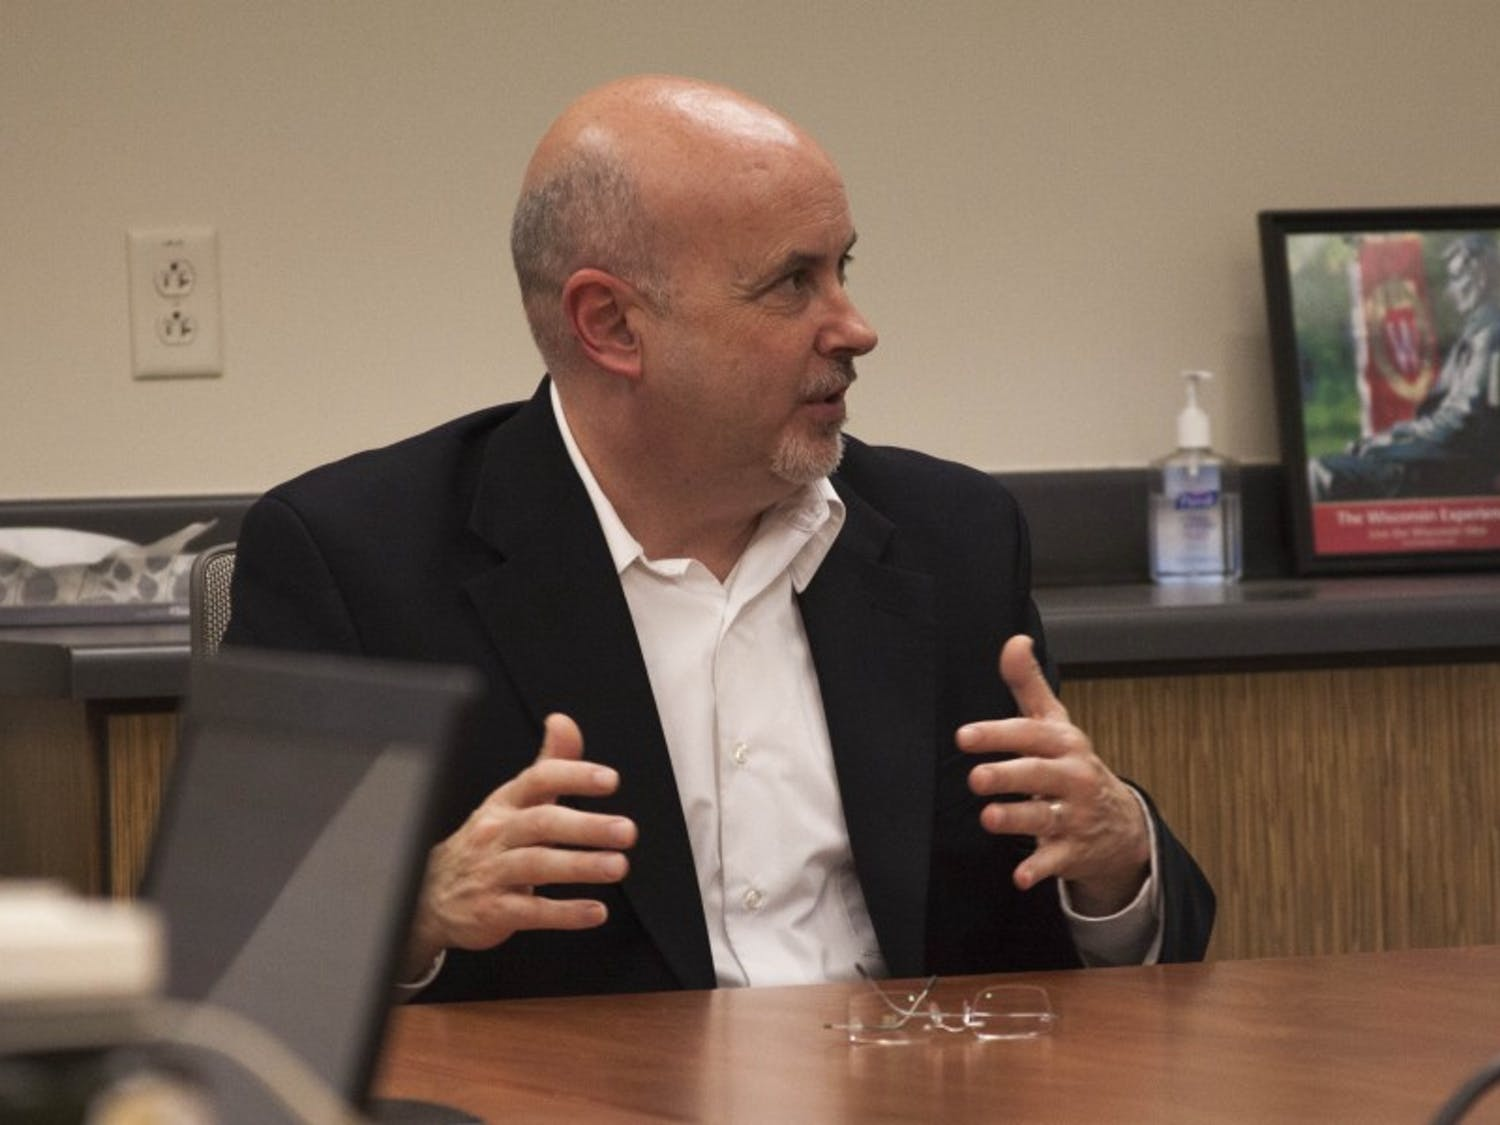 U.S. Democratic Rep. Mark Pocan warns Walker to drop the ACA lawsuit if he cares about patients with pre-existing conditions.